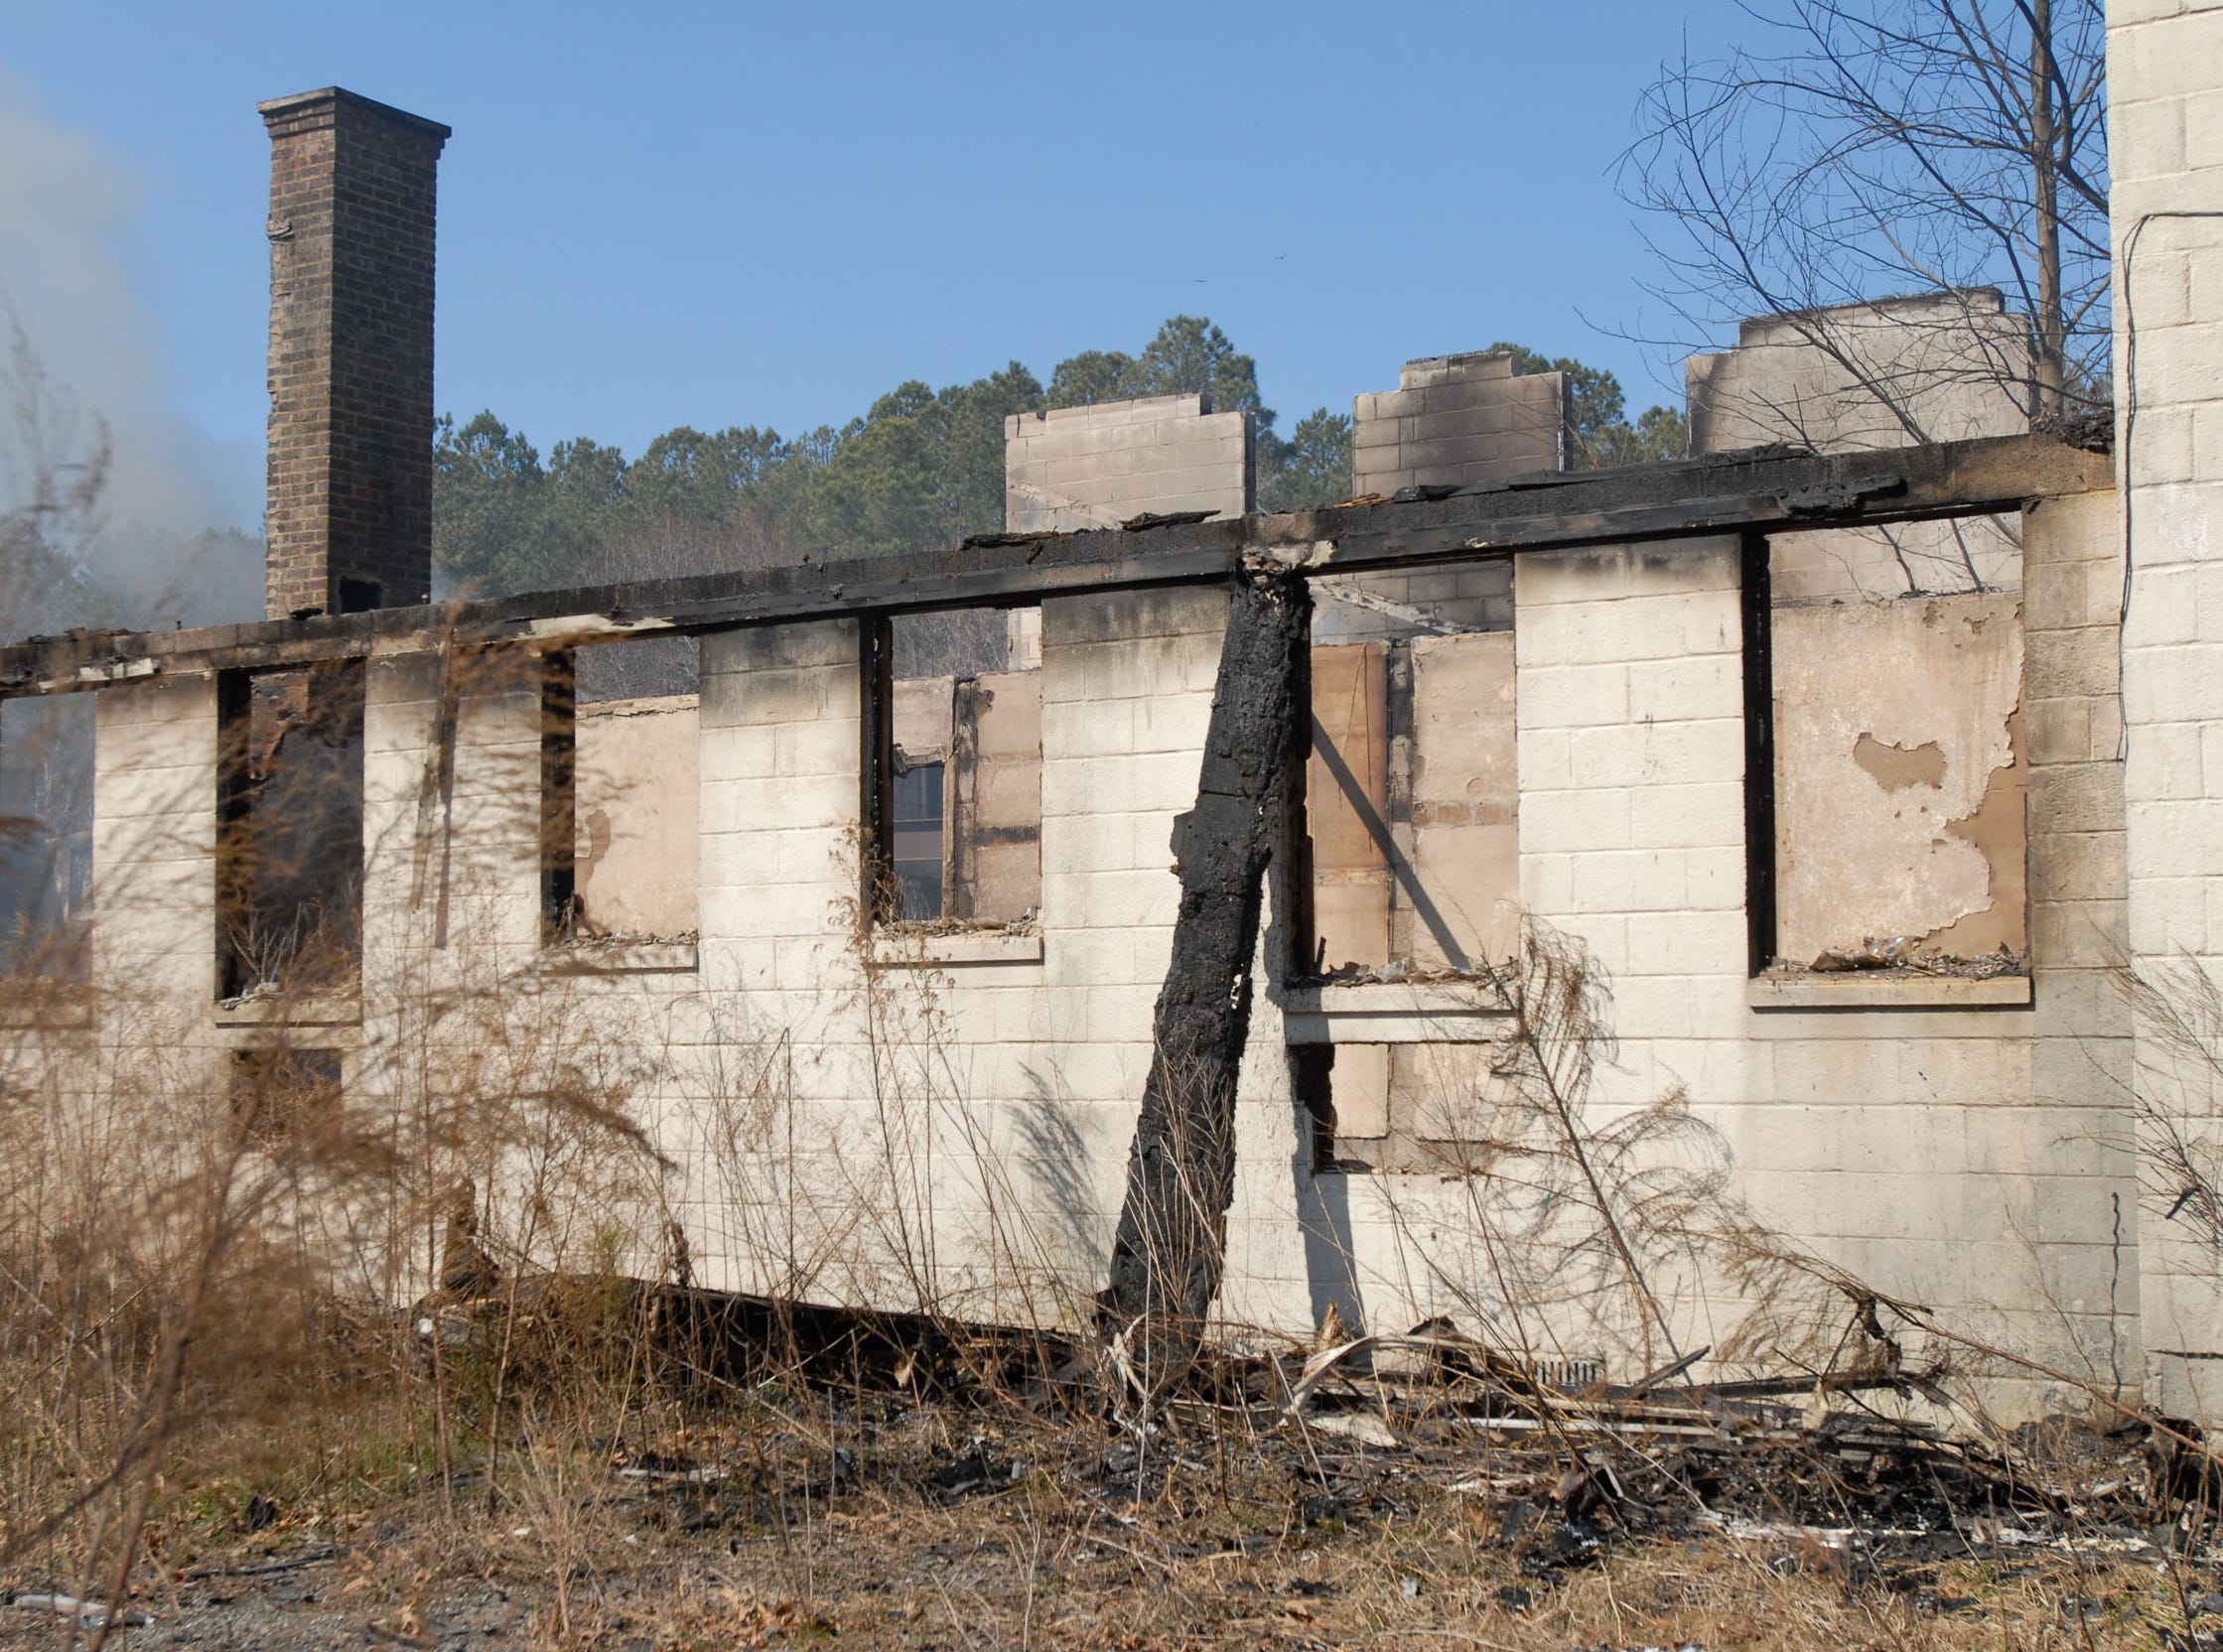 The remains of the Whispering Pines Motel are seen on wednesday, March 13, 2013 after fire swept through the famous Tasley structure the night before.